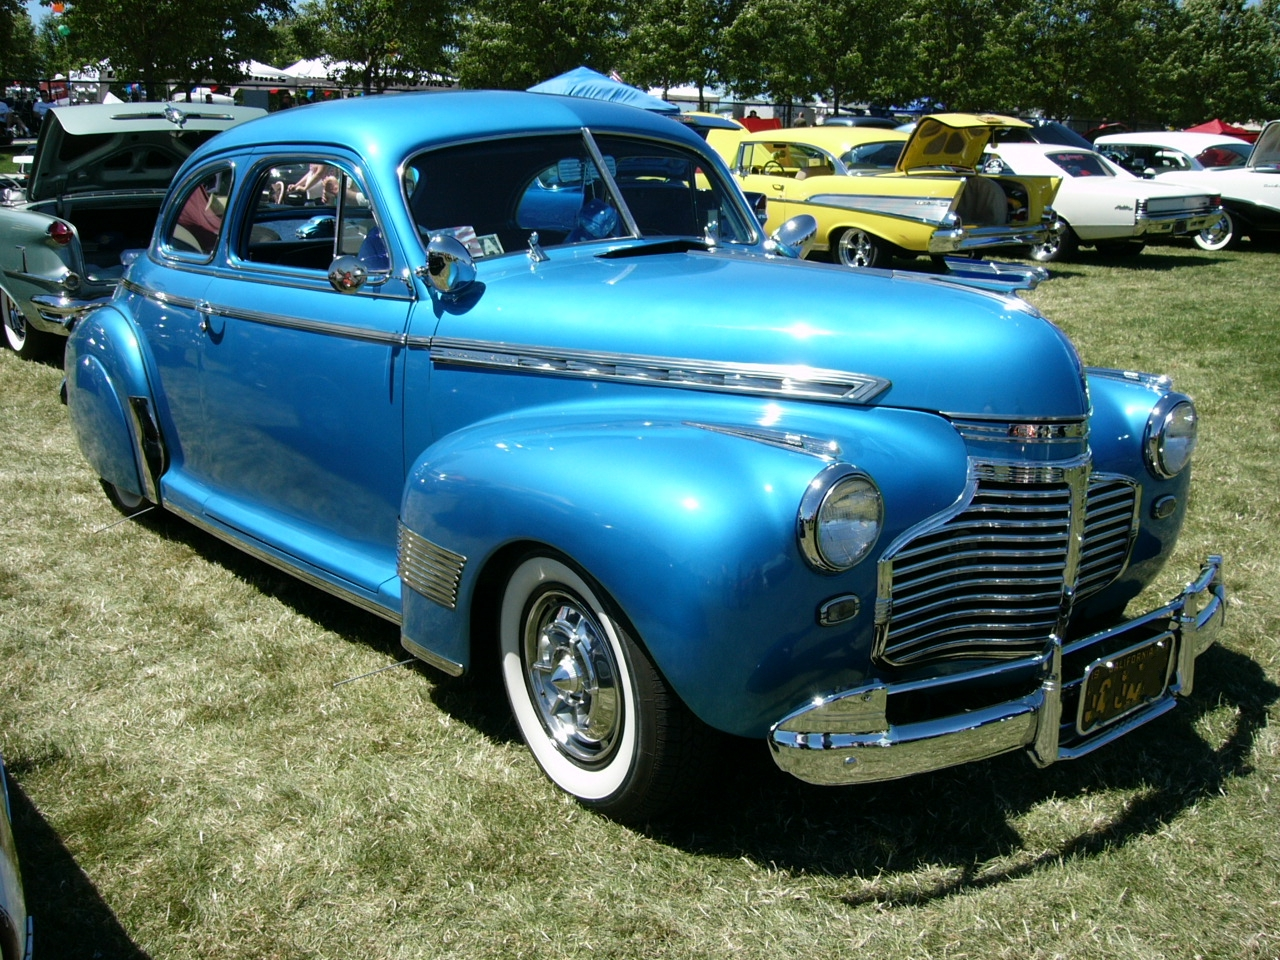 1941 Chevrolet Special Deluxe By Roadtripdog On Deviantart 1998 Chevy 1500 Wiring Diagram 62 Chevy Truck Wiring Diagram On 1941 Chevrolet Special Deluxe By Roadtripdog 1941 Chevrolet Special Deluxe By Roadtripdog